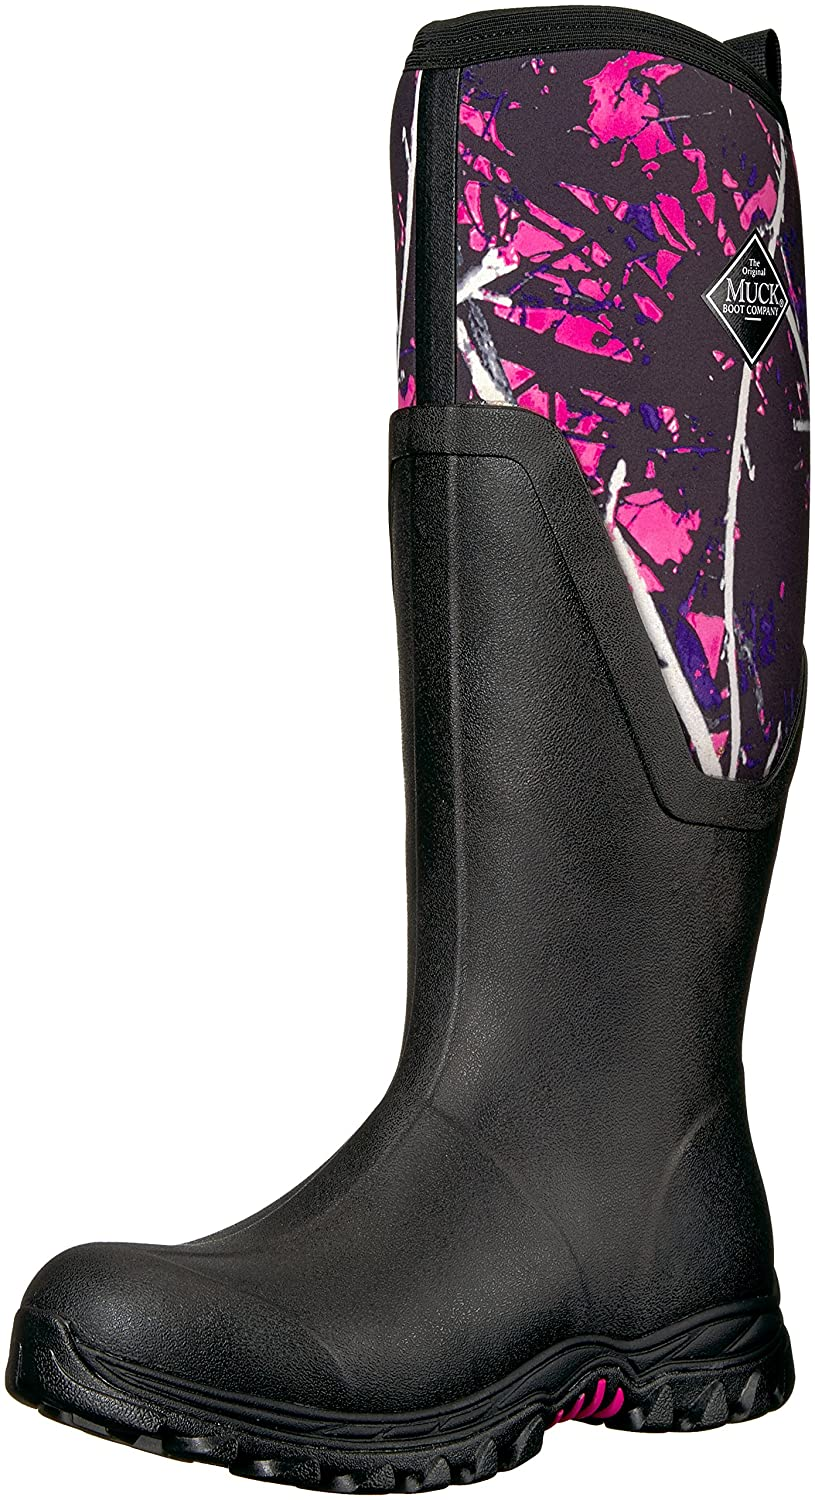 Muck Boot Women's Arctic Sport II Tall Snow B071J459MR 9 B(M) US|Black / Muddy Girl